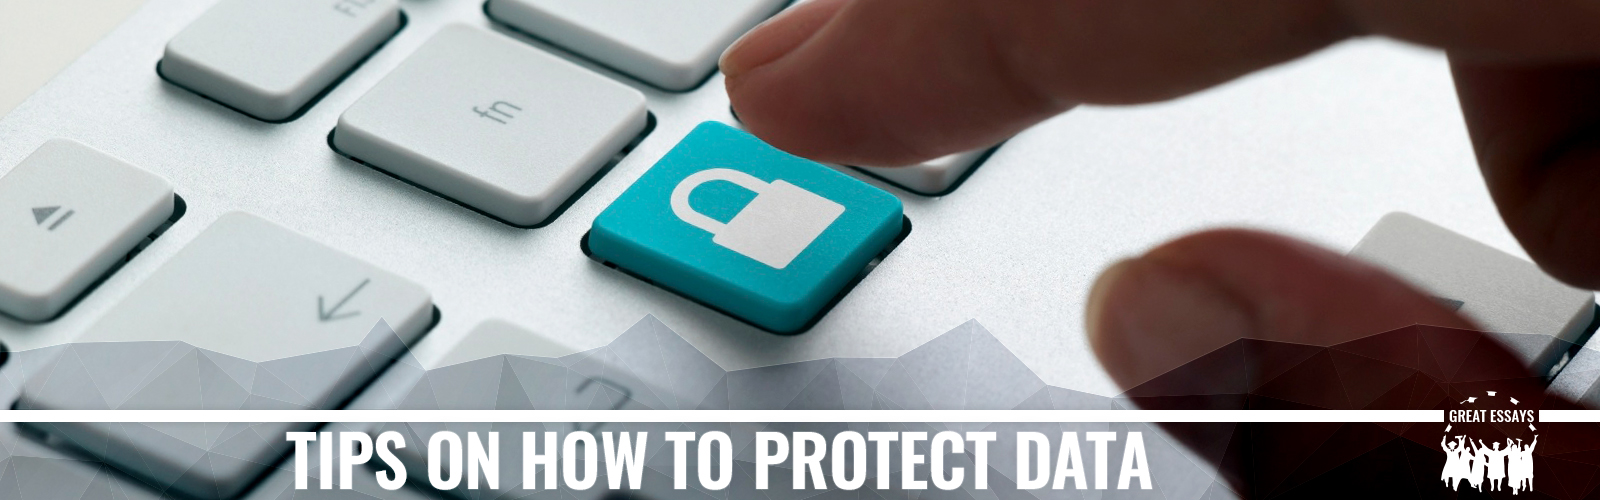 TIPS ON HOW TO PROTECT DATA